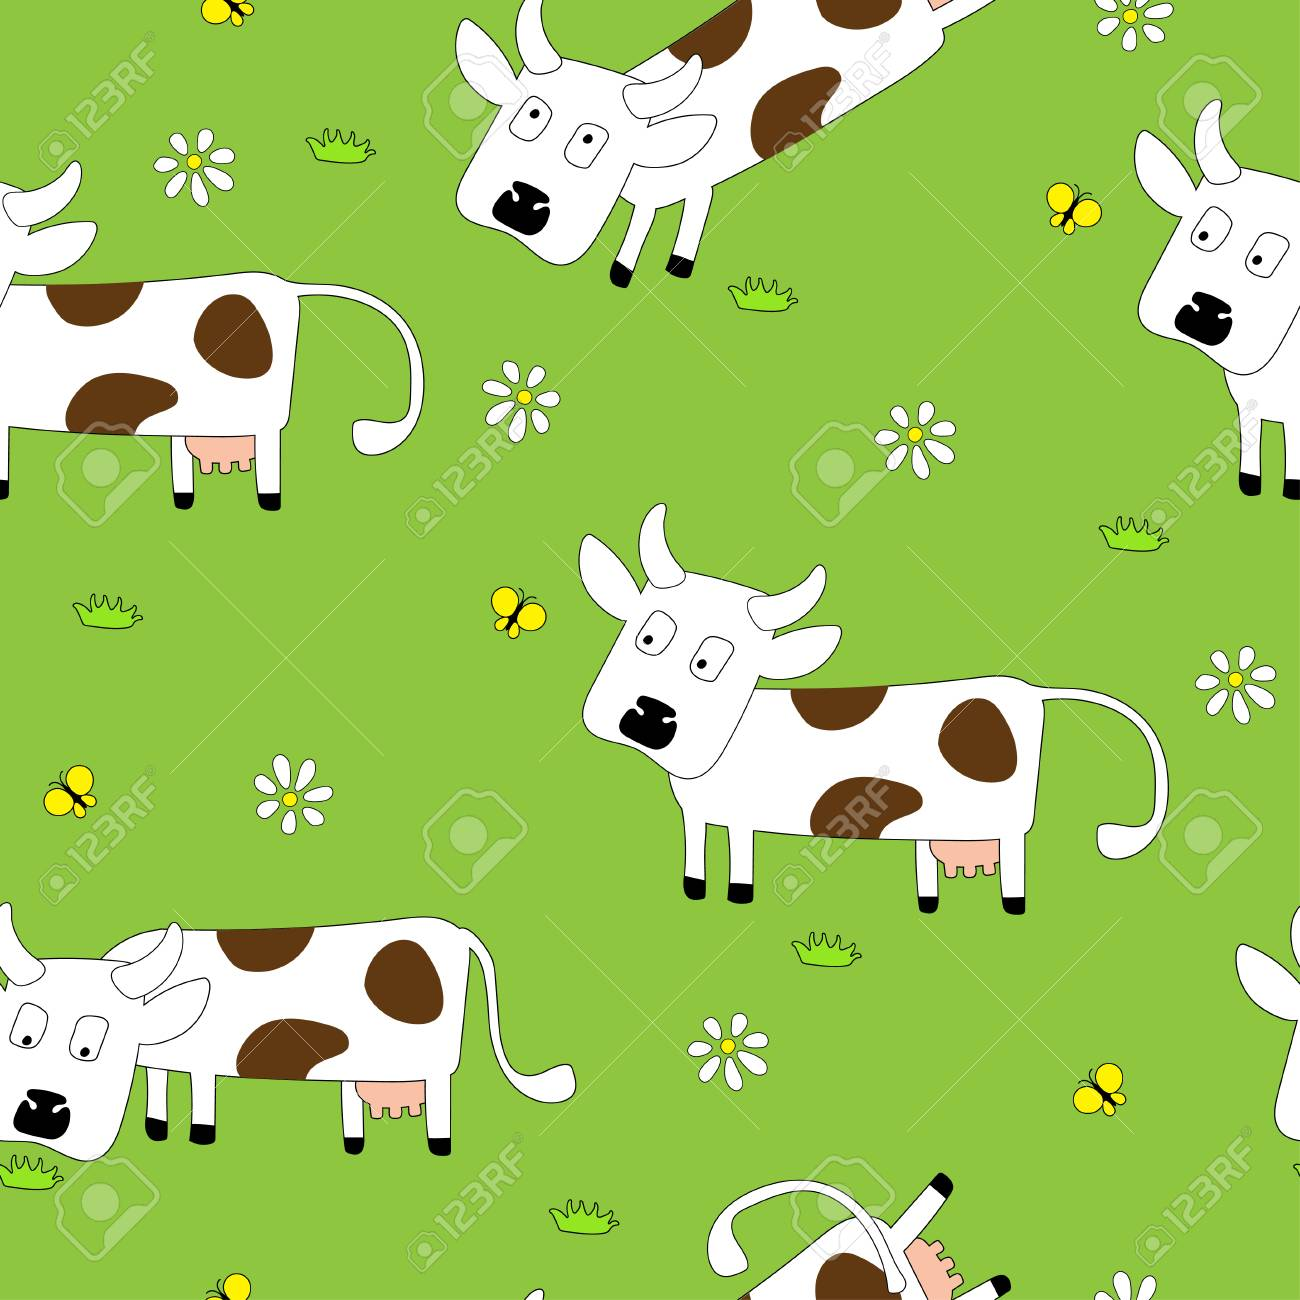 Cow pattern wallpaper